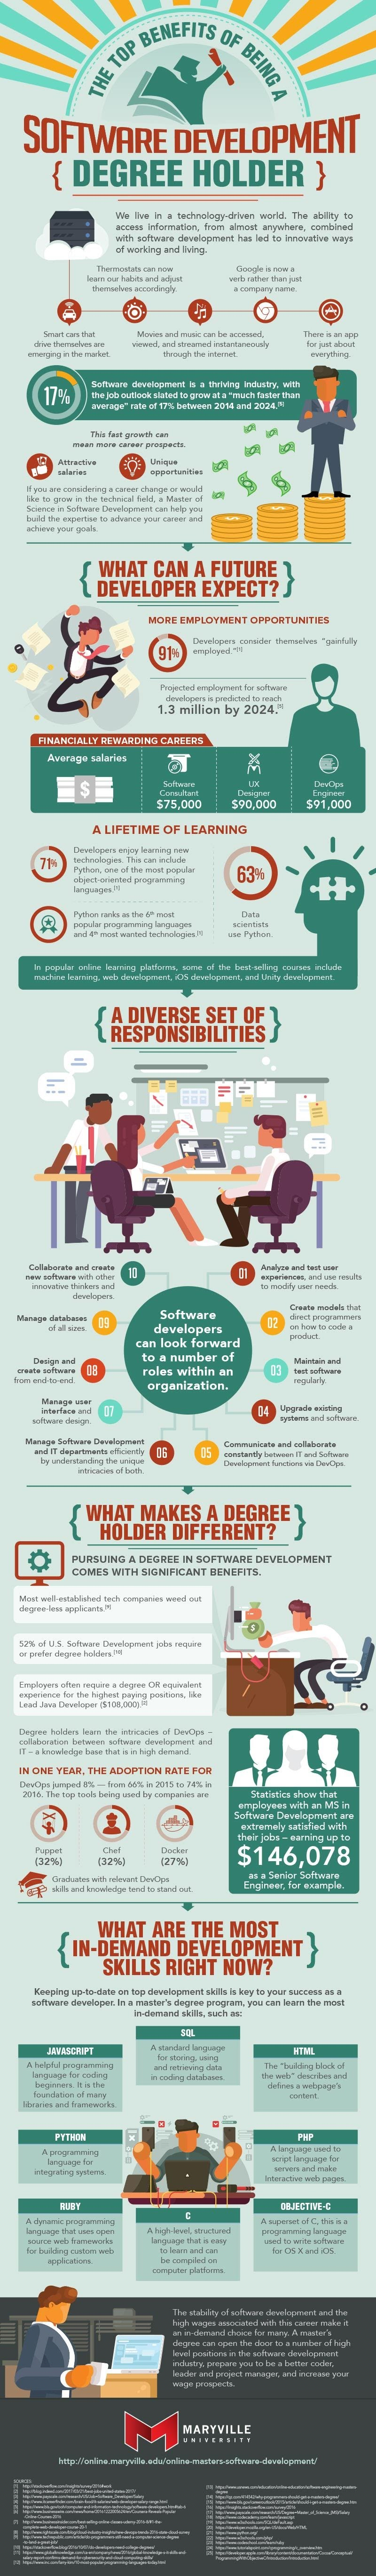 Top Benefits of Being a Software Development Degree Holder #infographic